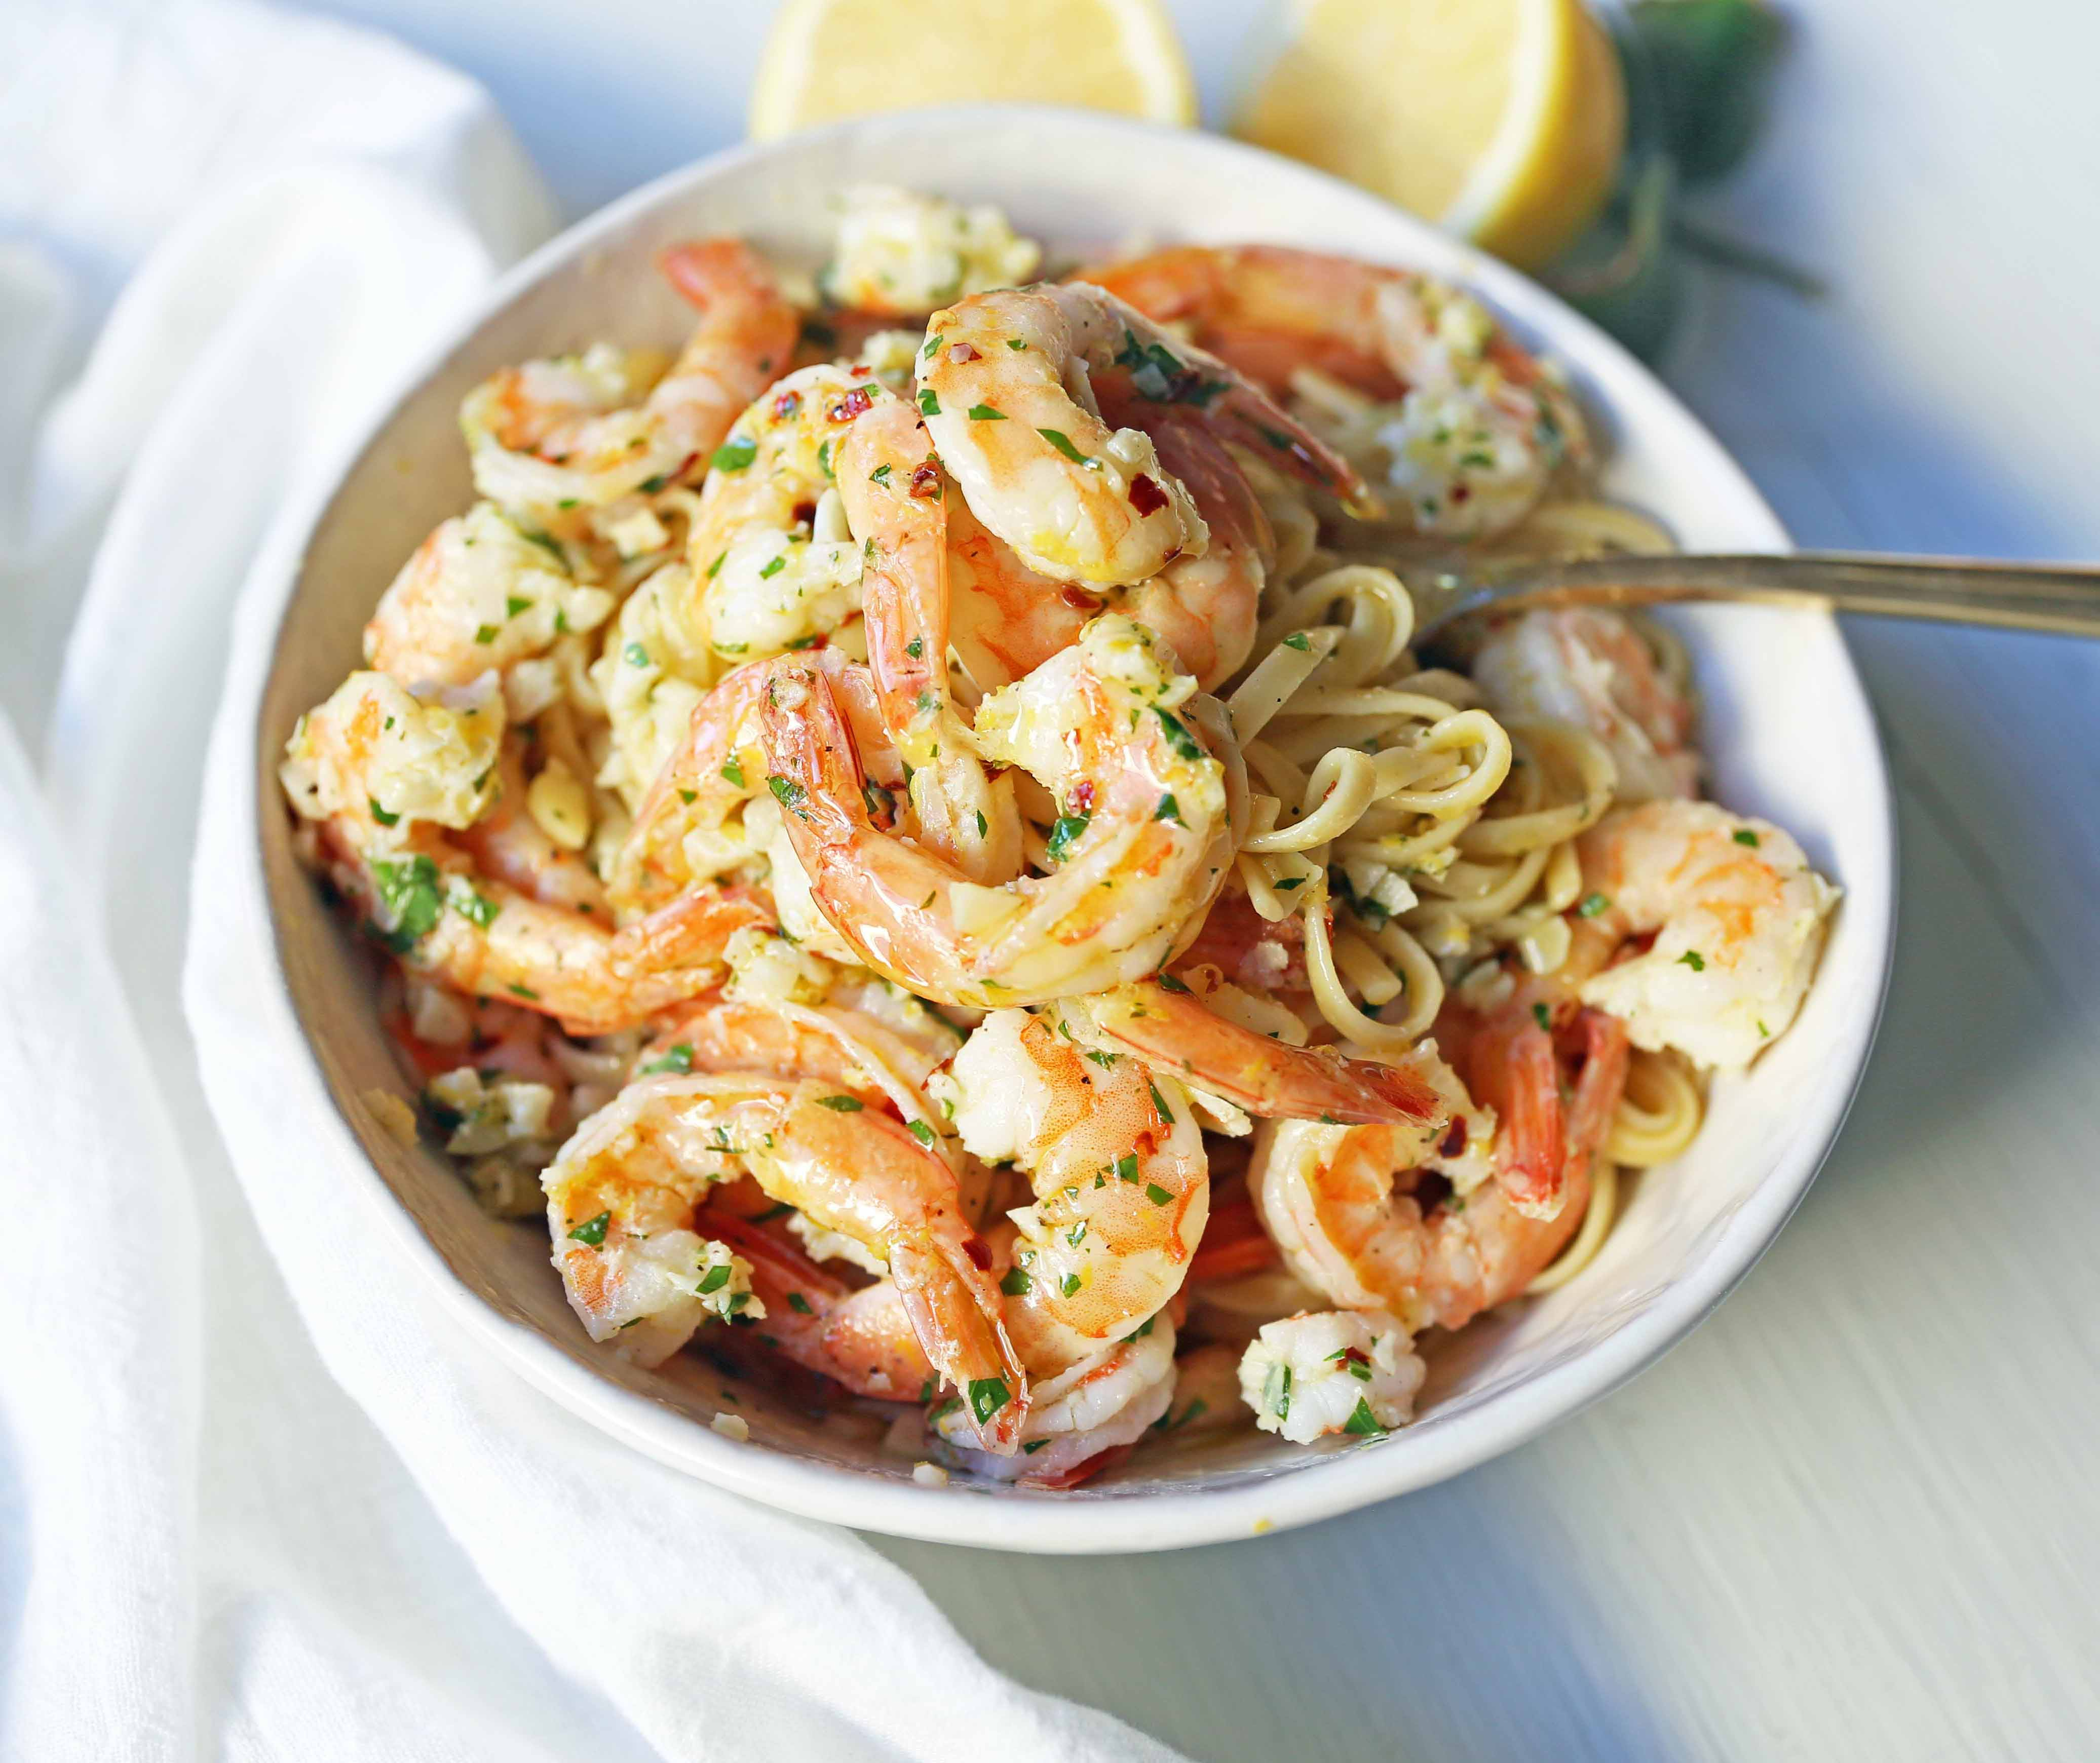 Shrimp Scampi Linguine. Shrimp sauteed in a lemon garlic butter sauce tossed with linguine pasta and made in less than 20 minutes.www.modernhoney.com #shrimp #shrimpscampi #shrimpscampilinguine #pasta #valentinesday